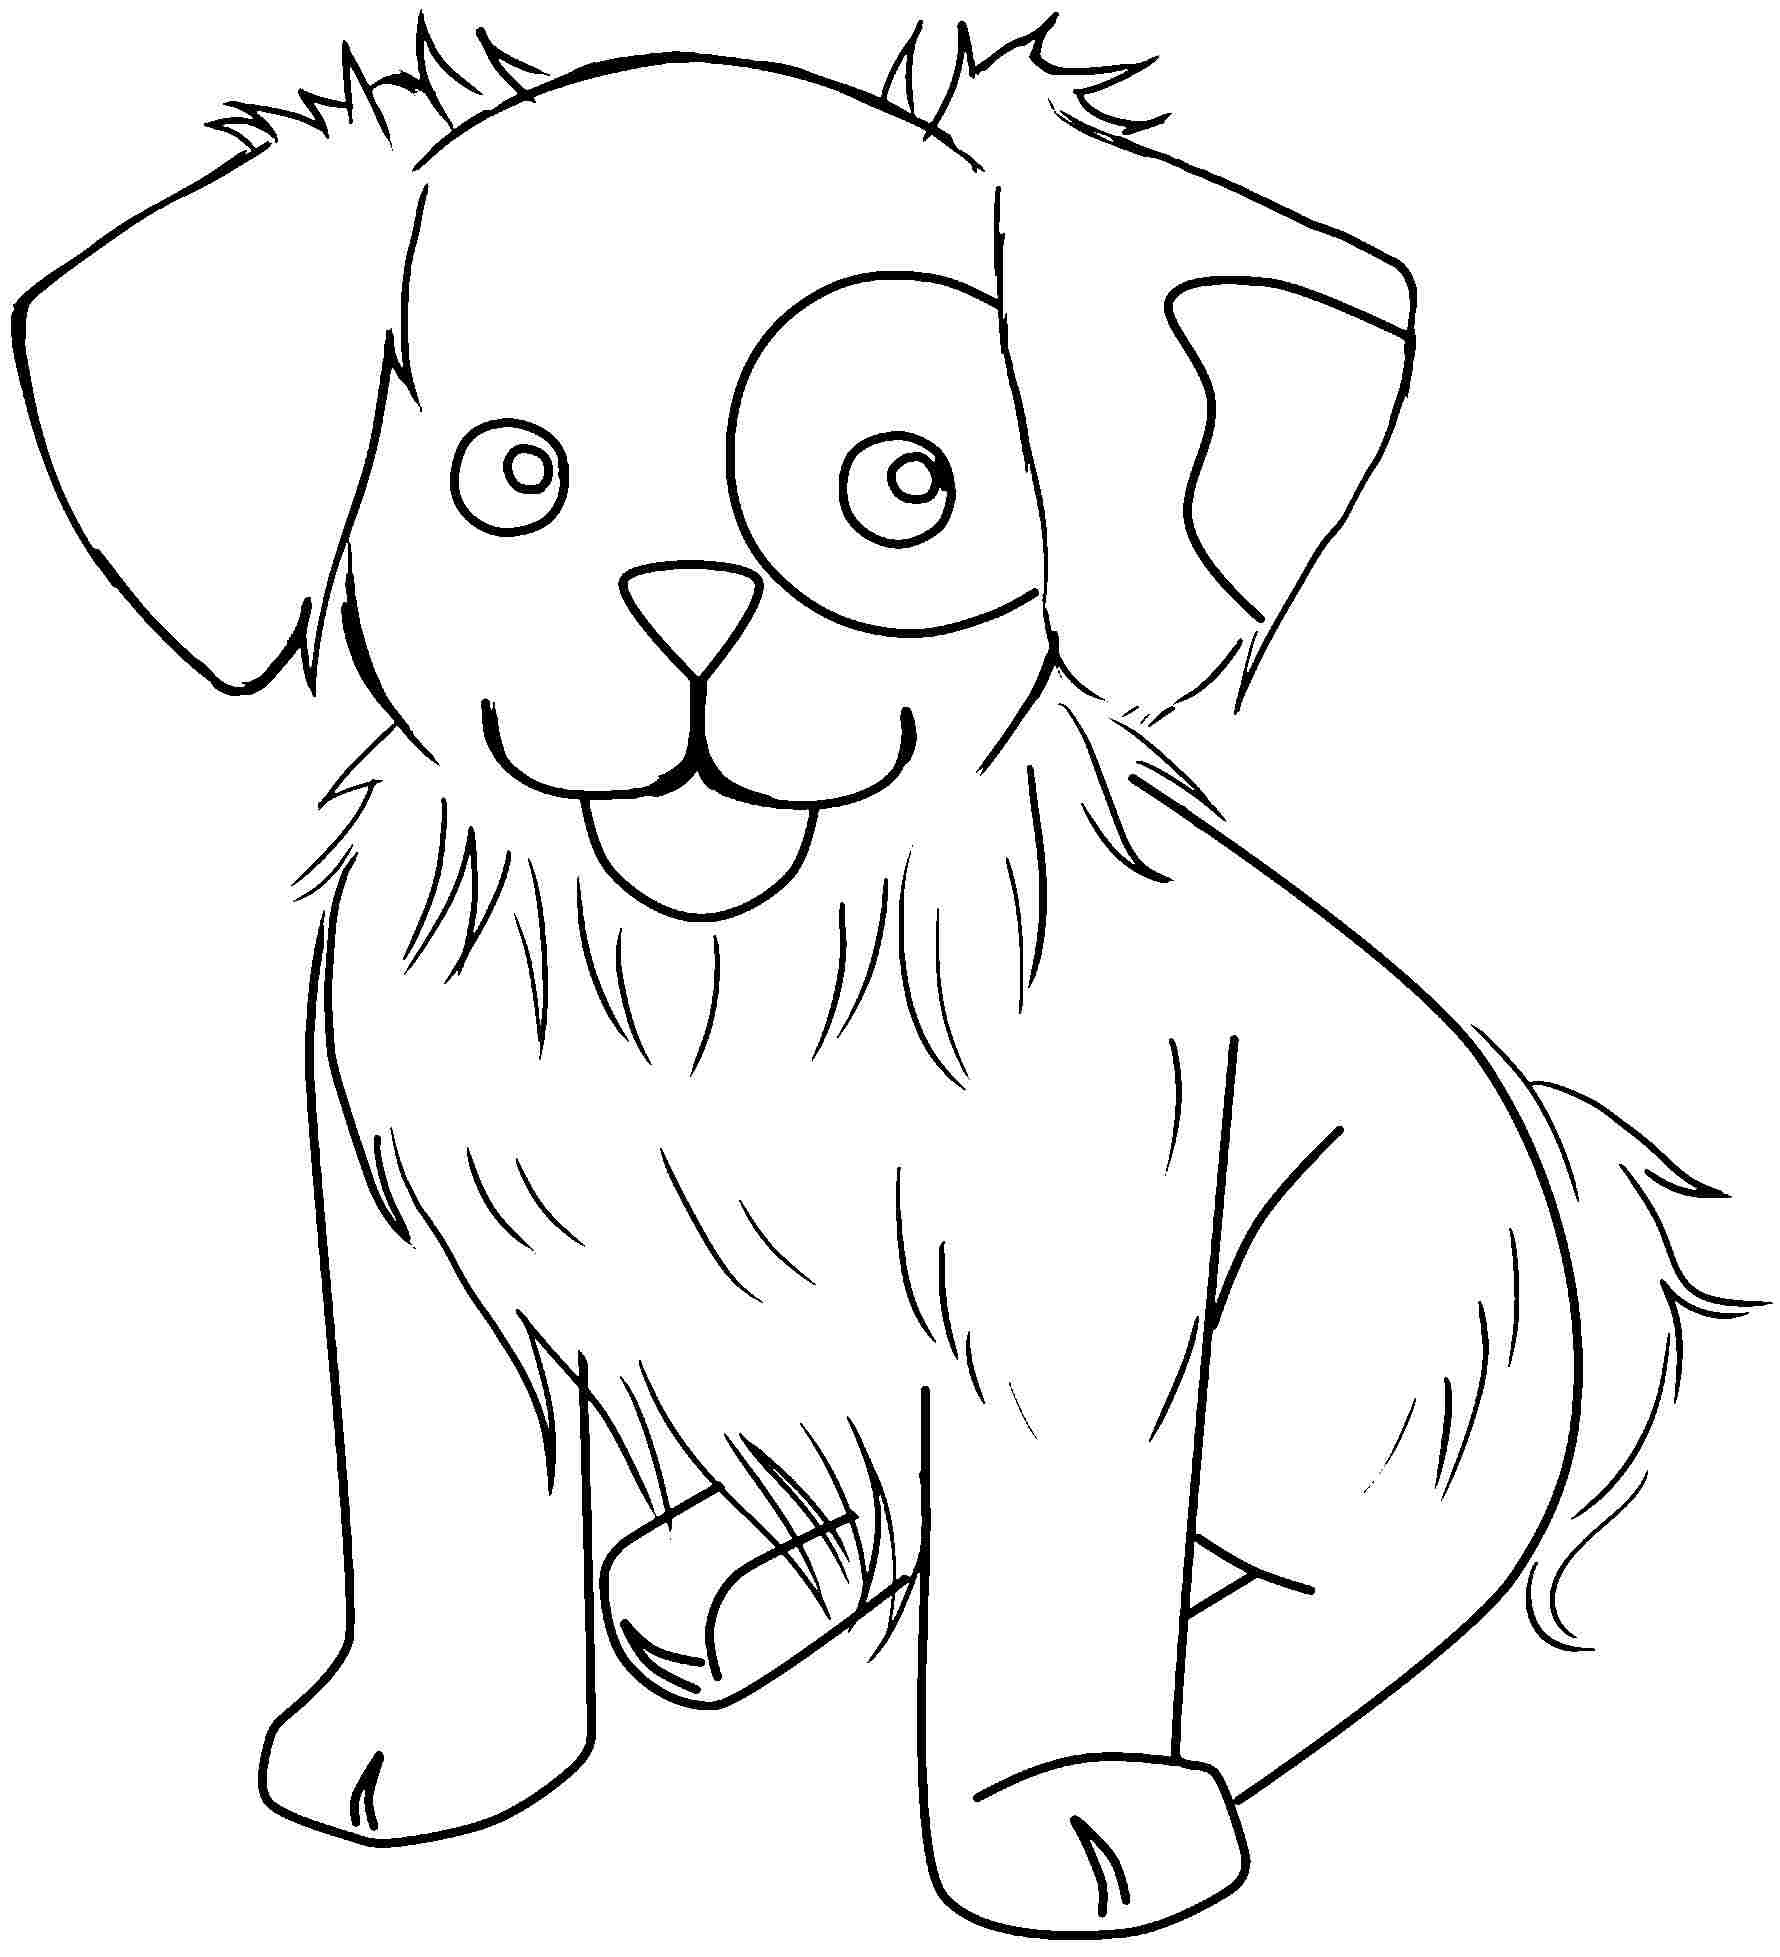 Free Printable Cute Animal Coloring Pages - Coloring Home